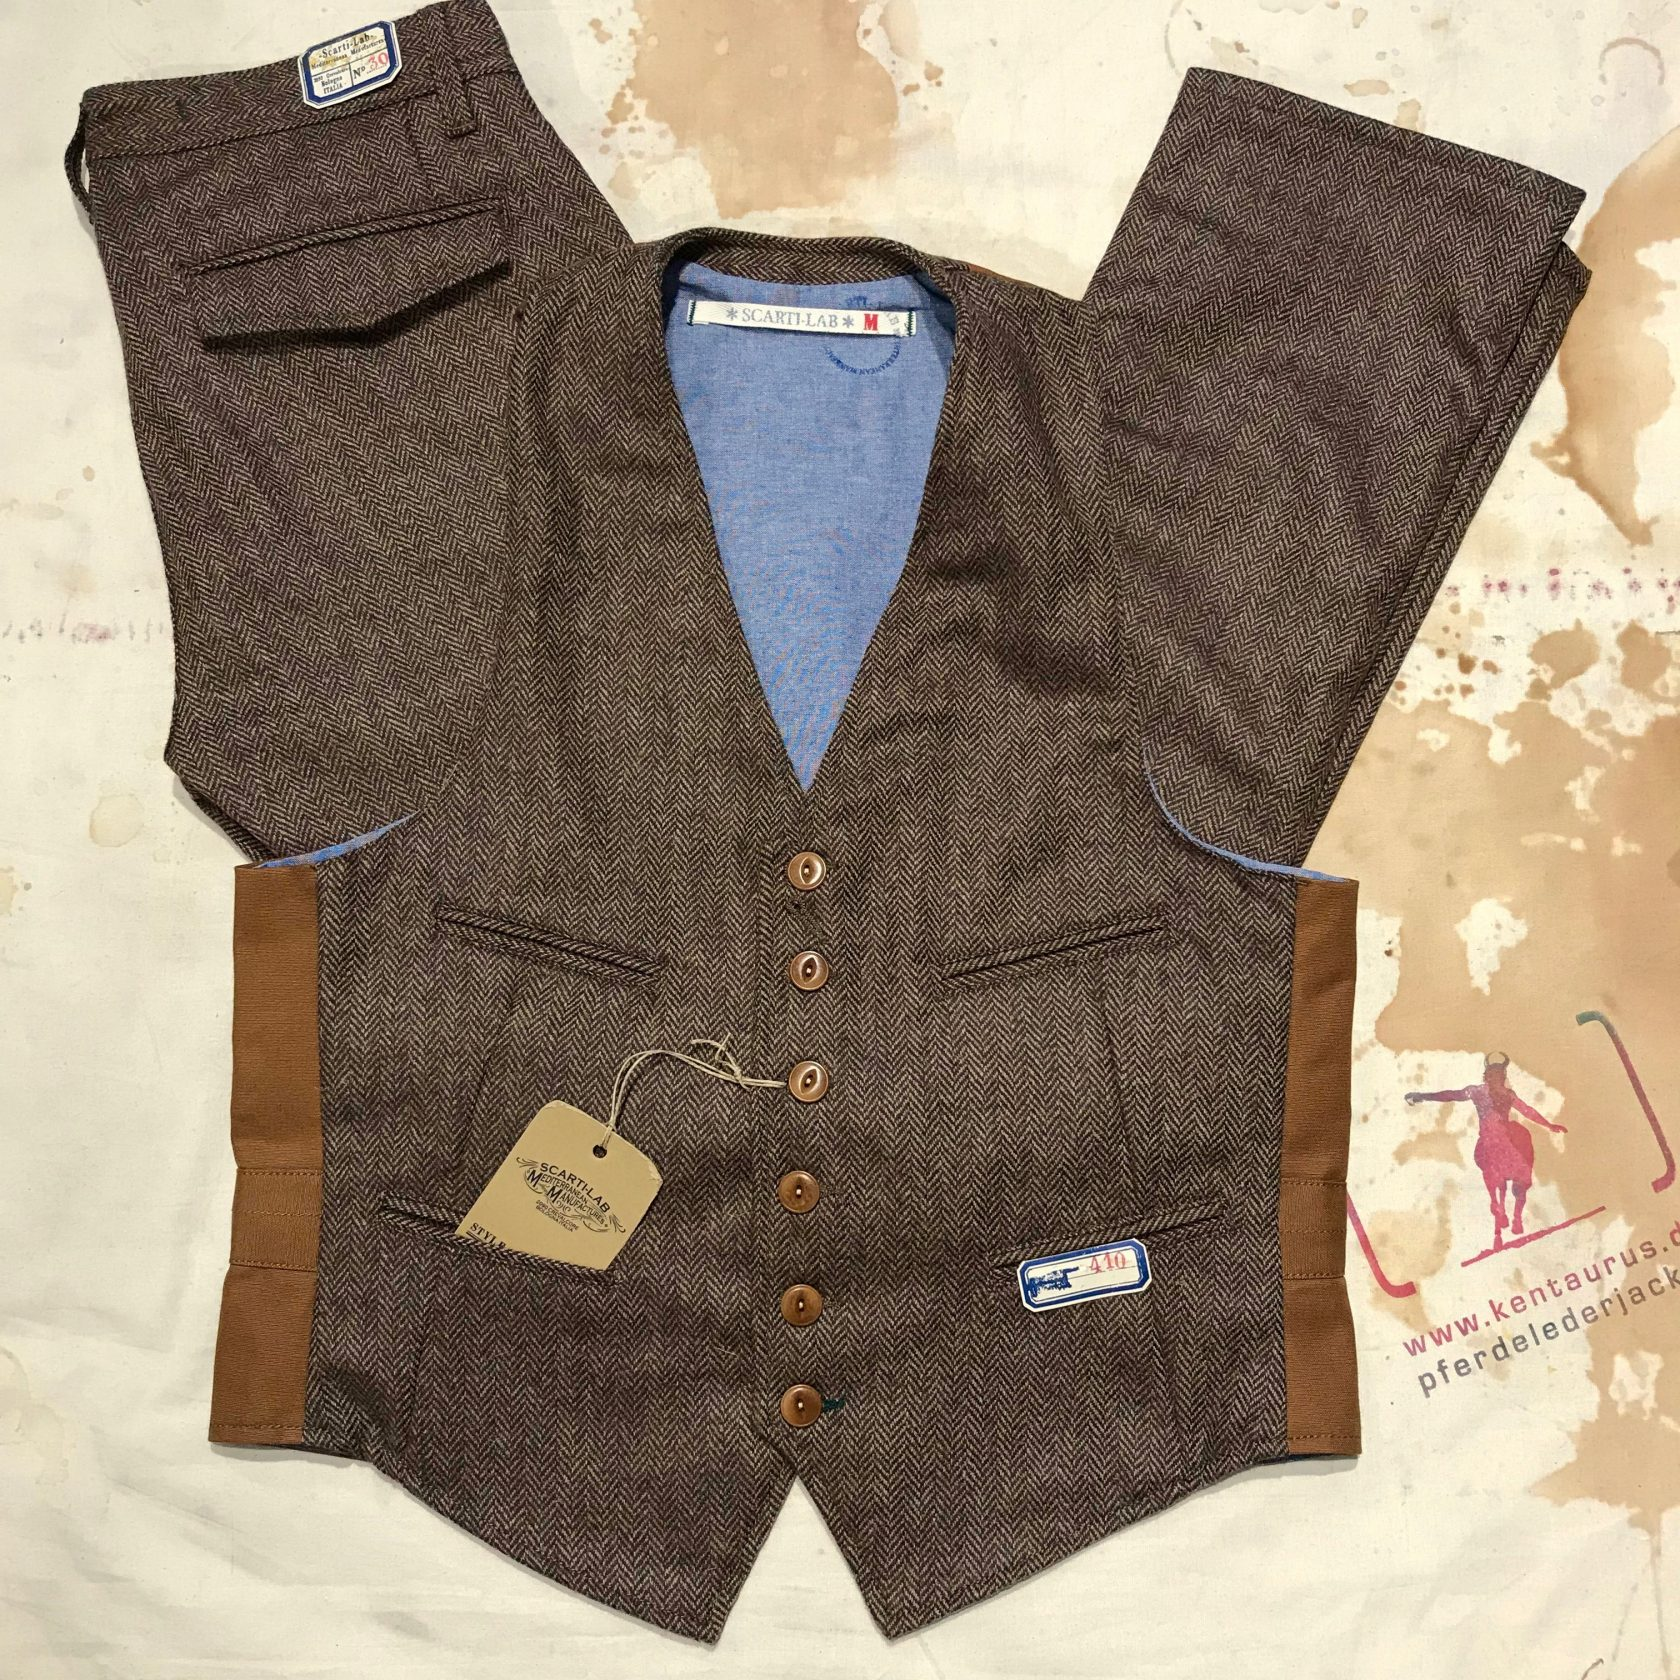 Scartilab wool vest and pant tobacco brown